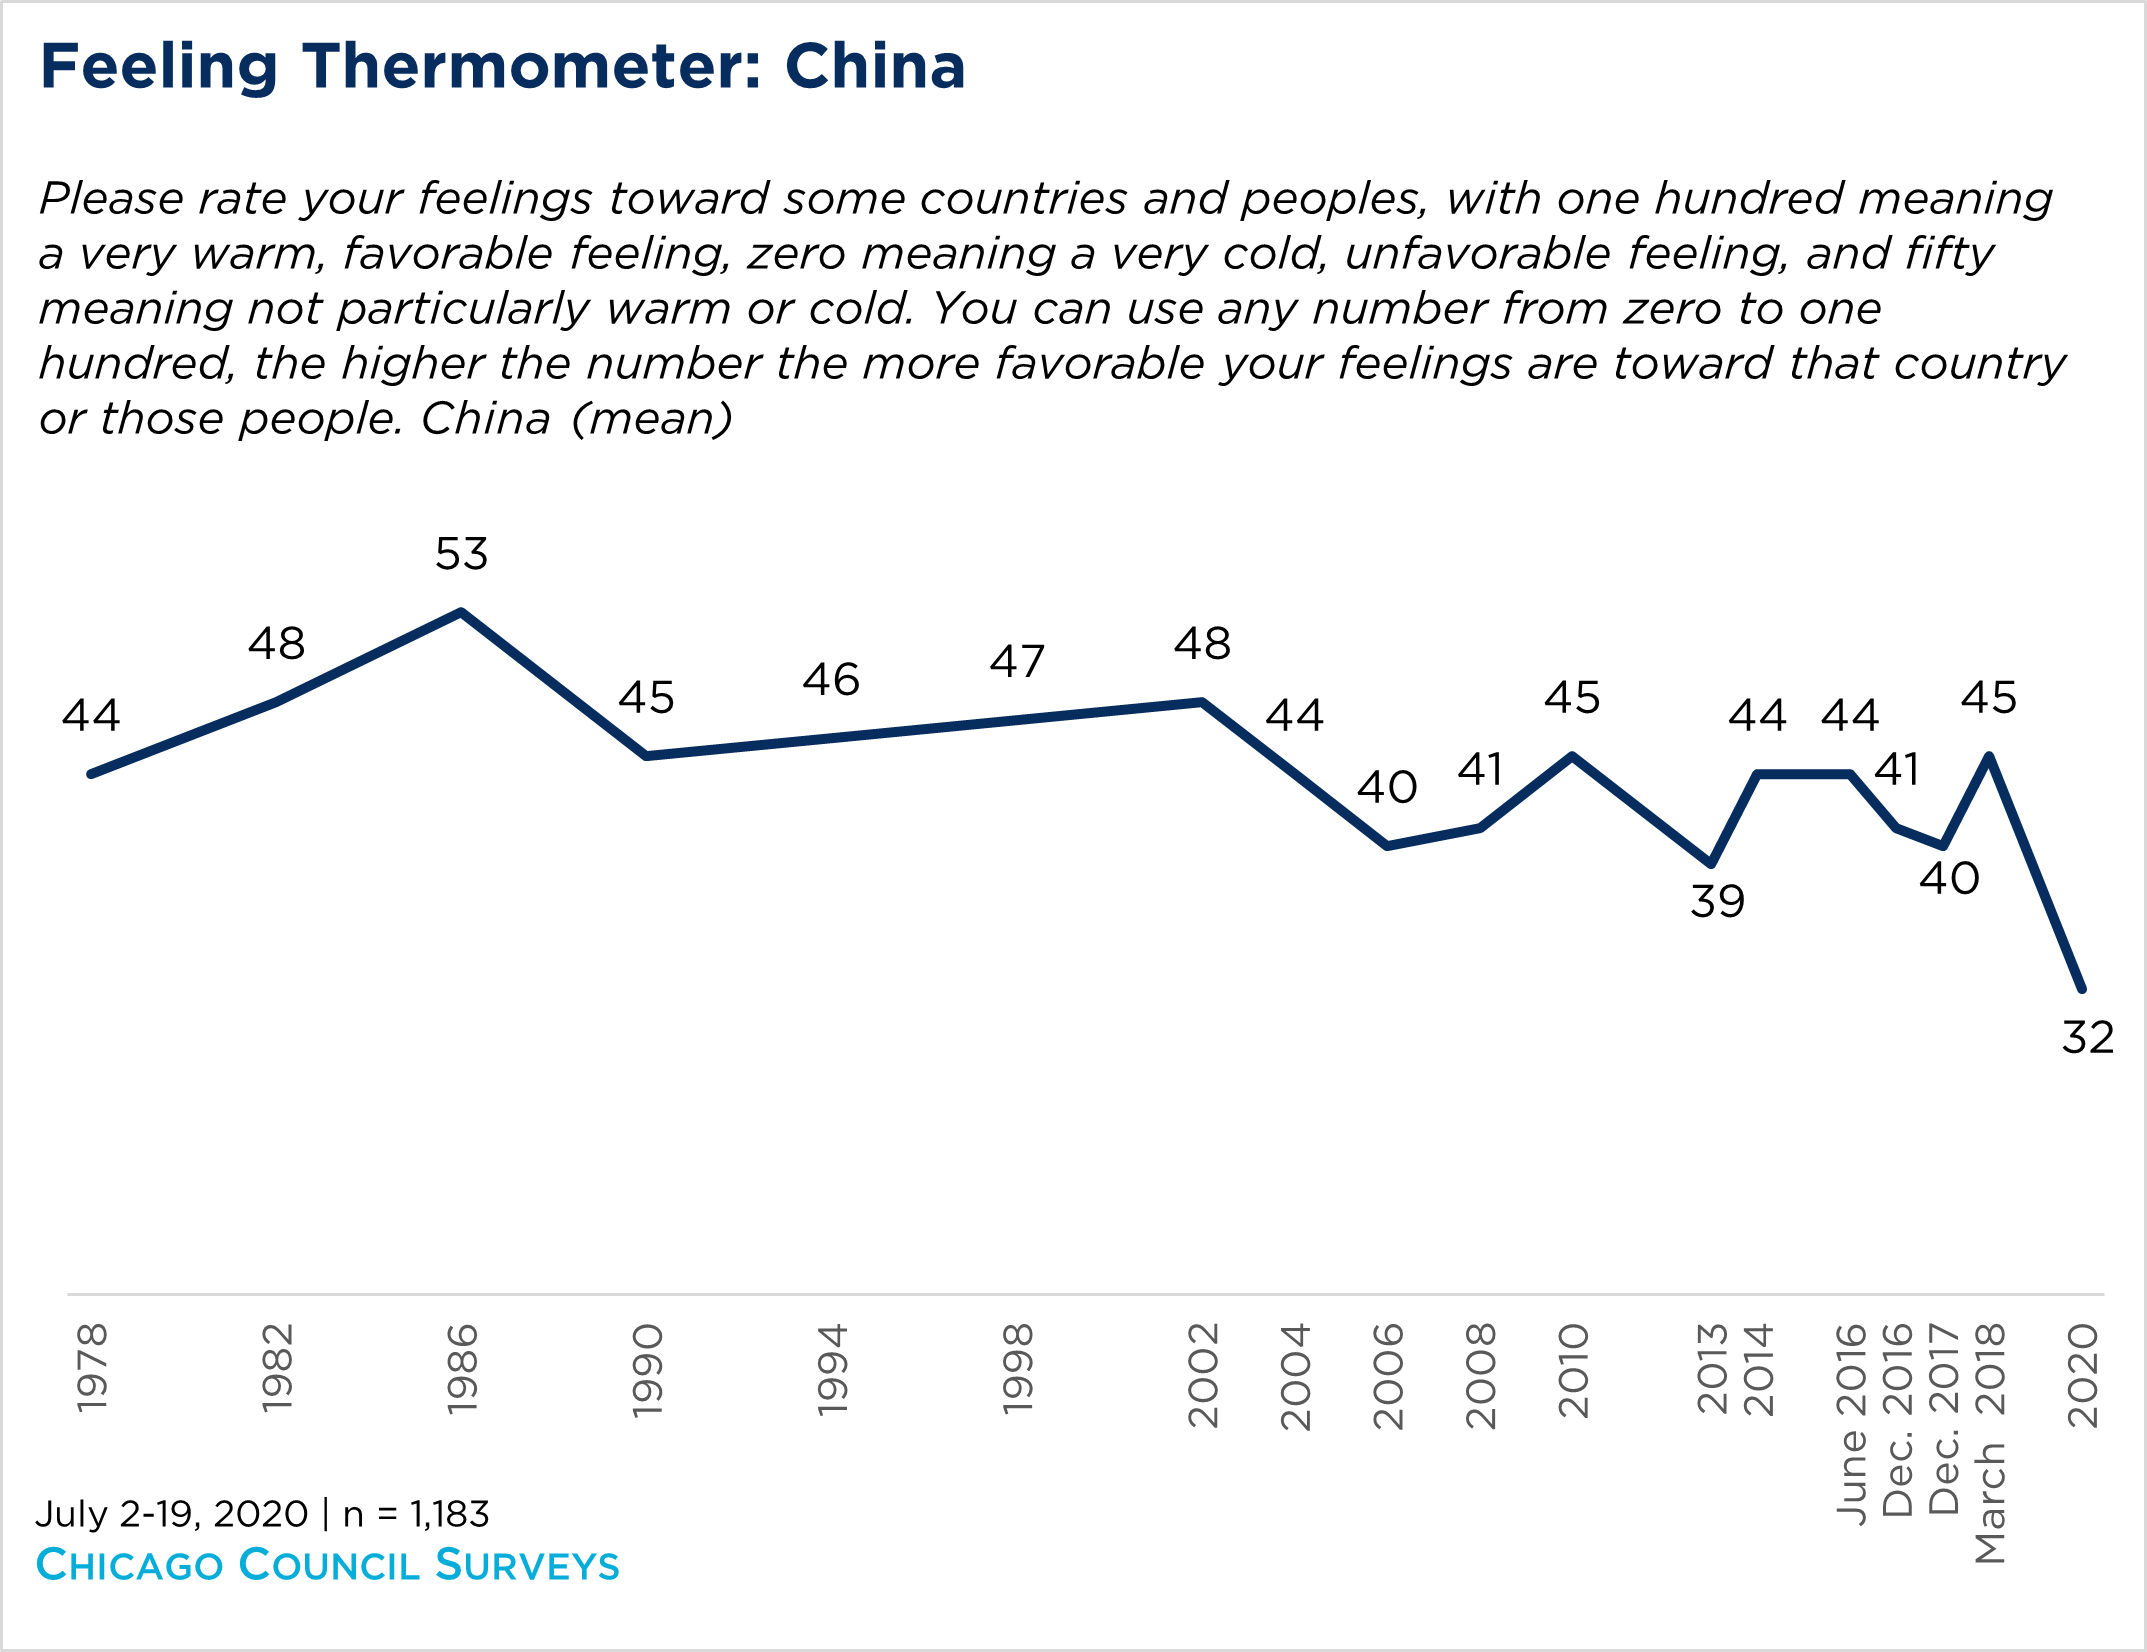 Chart showing a feeling thermometer of Americans toward China